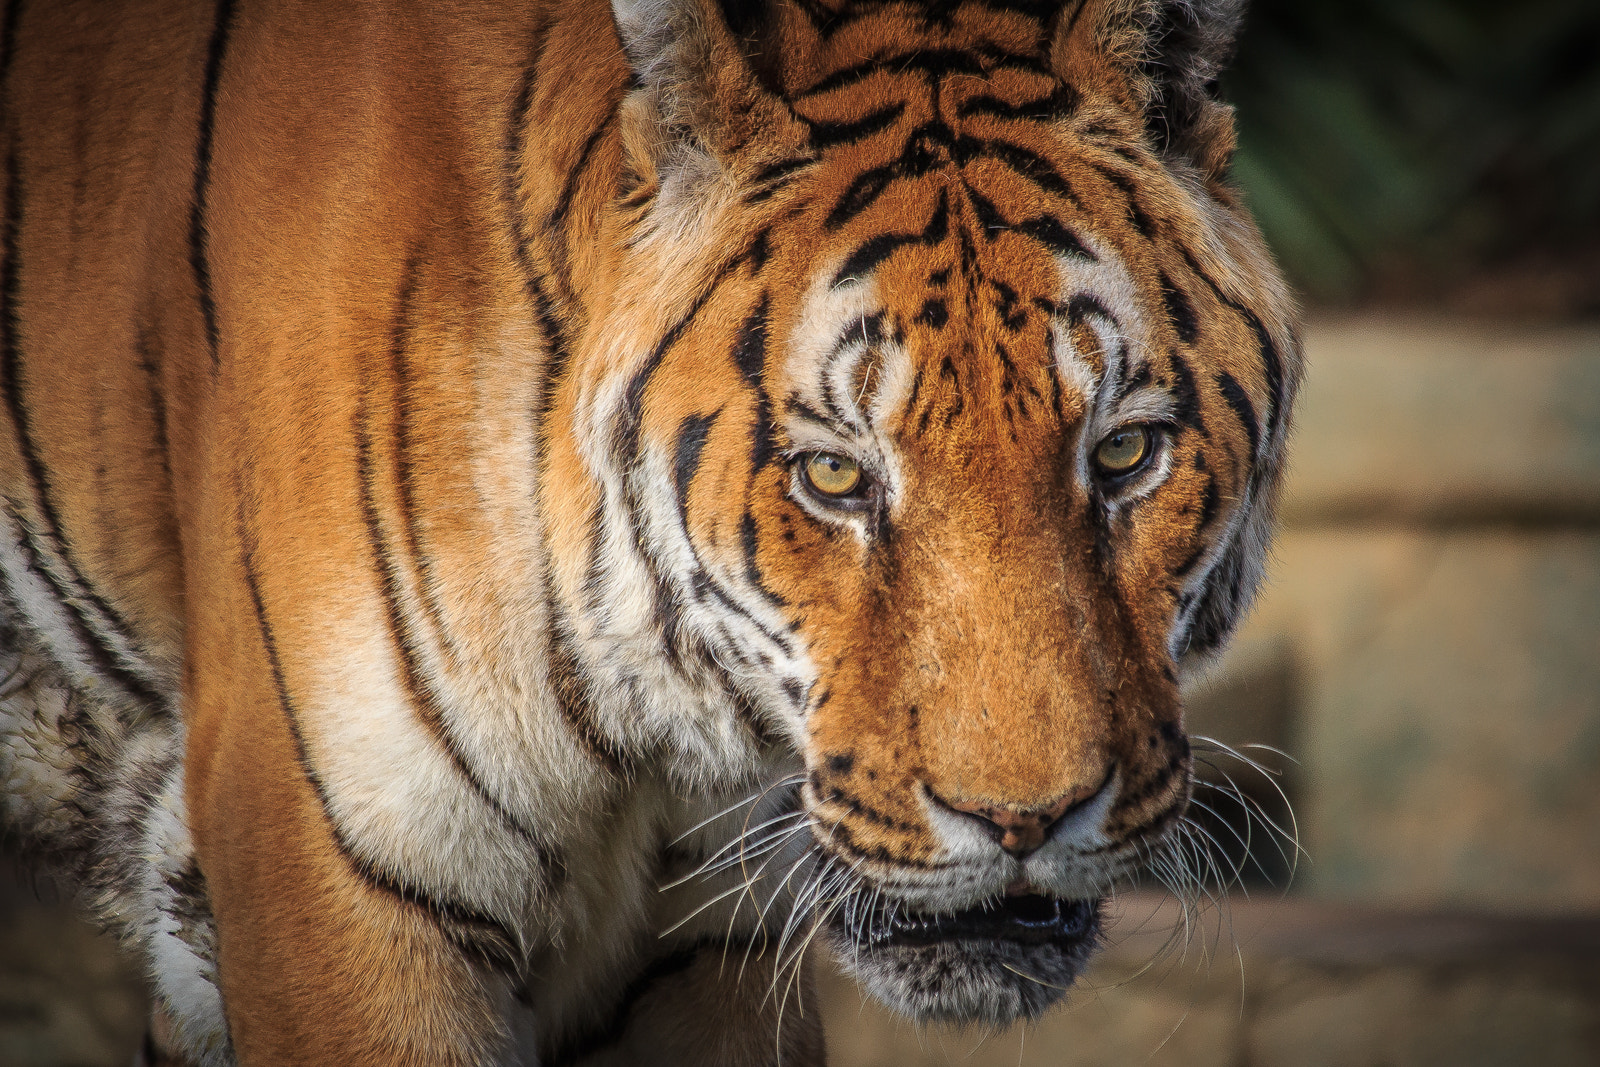 Photograph Tiger portrait by Donato Romagnuolo on 500px